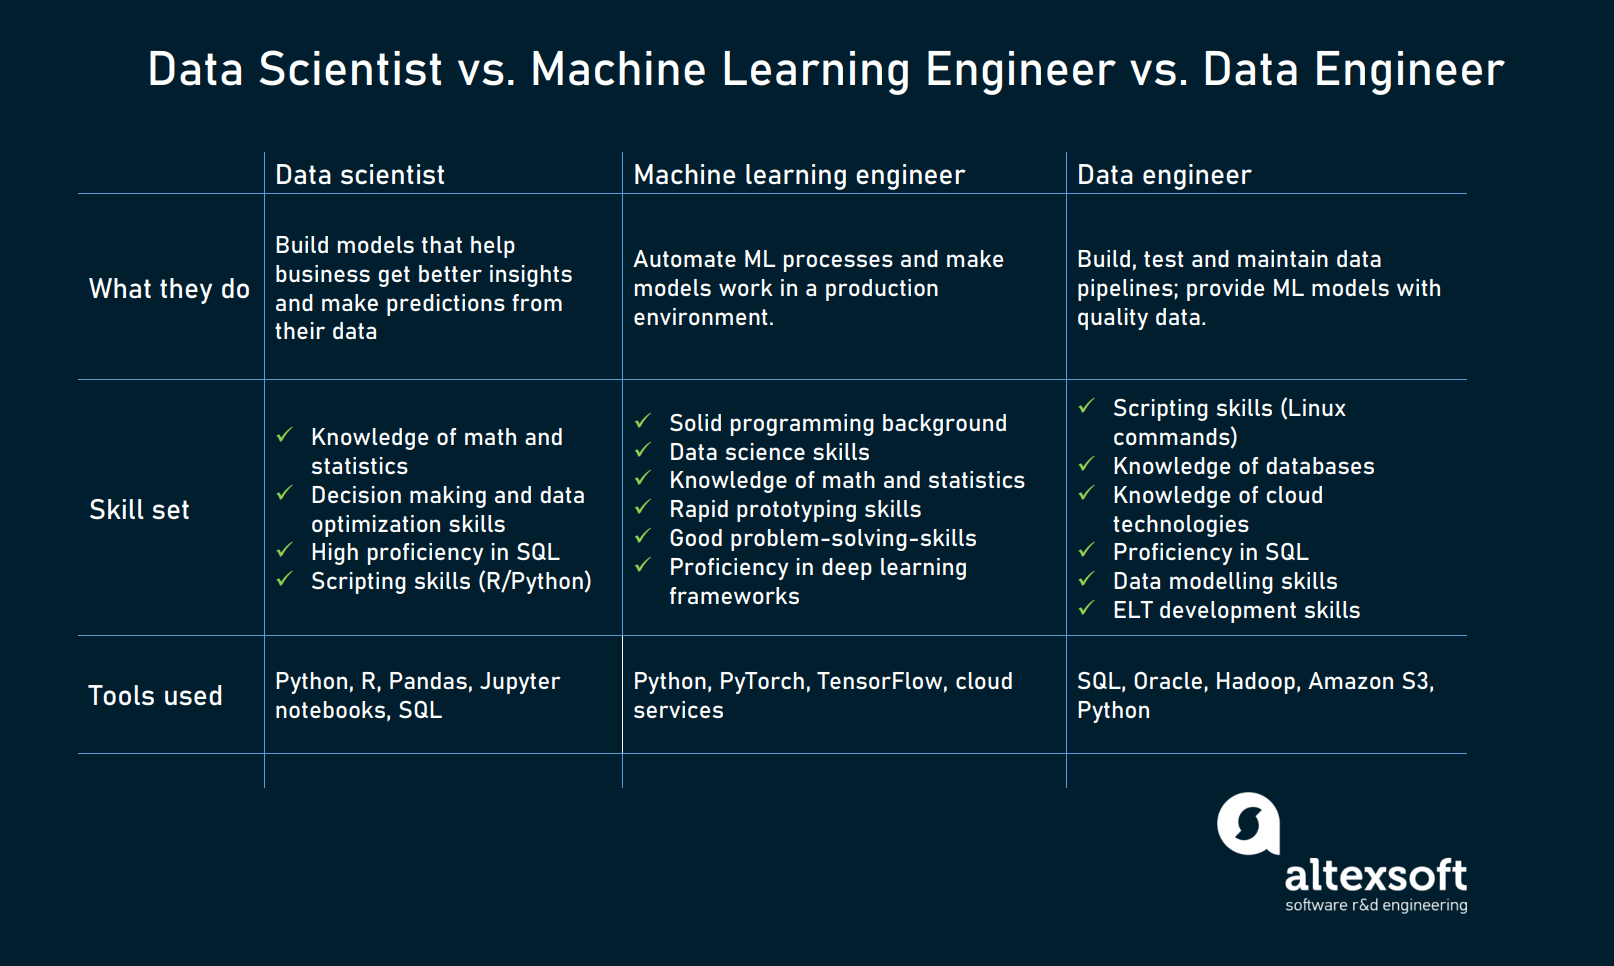 Data Scientist vs Machine Learning Engineer vs Data Engineer compared